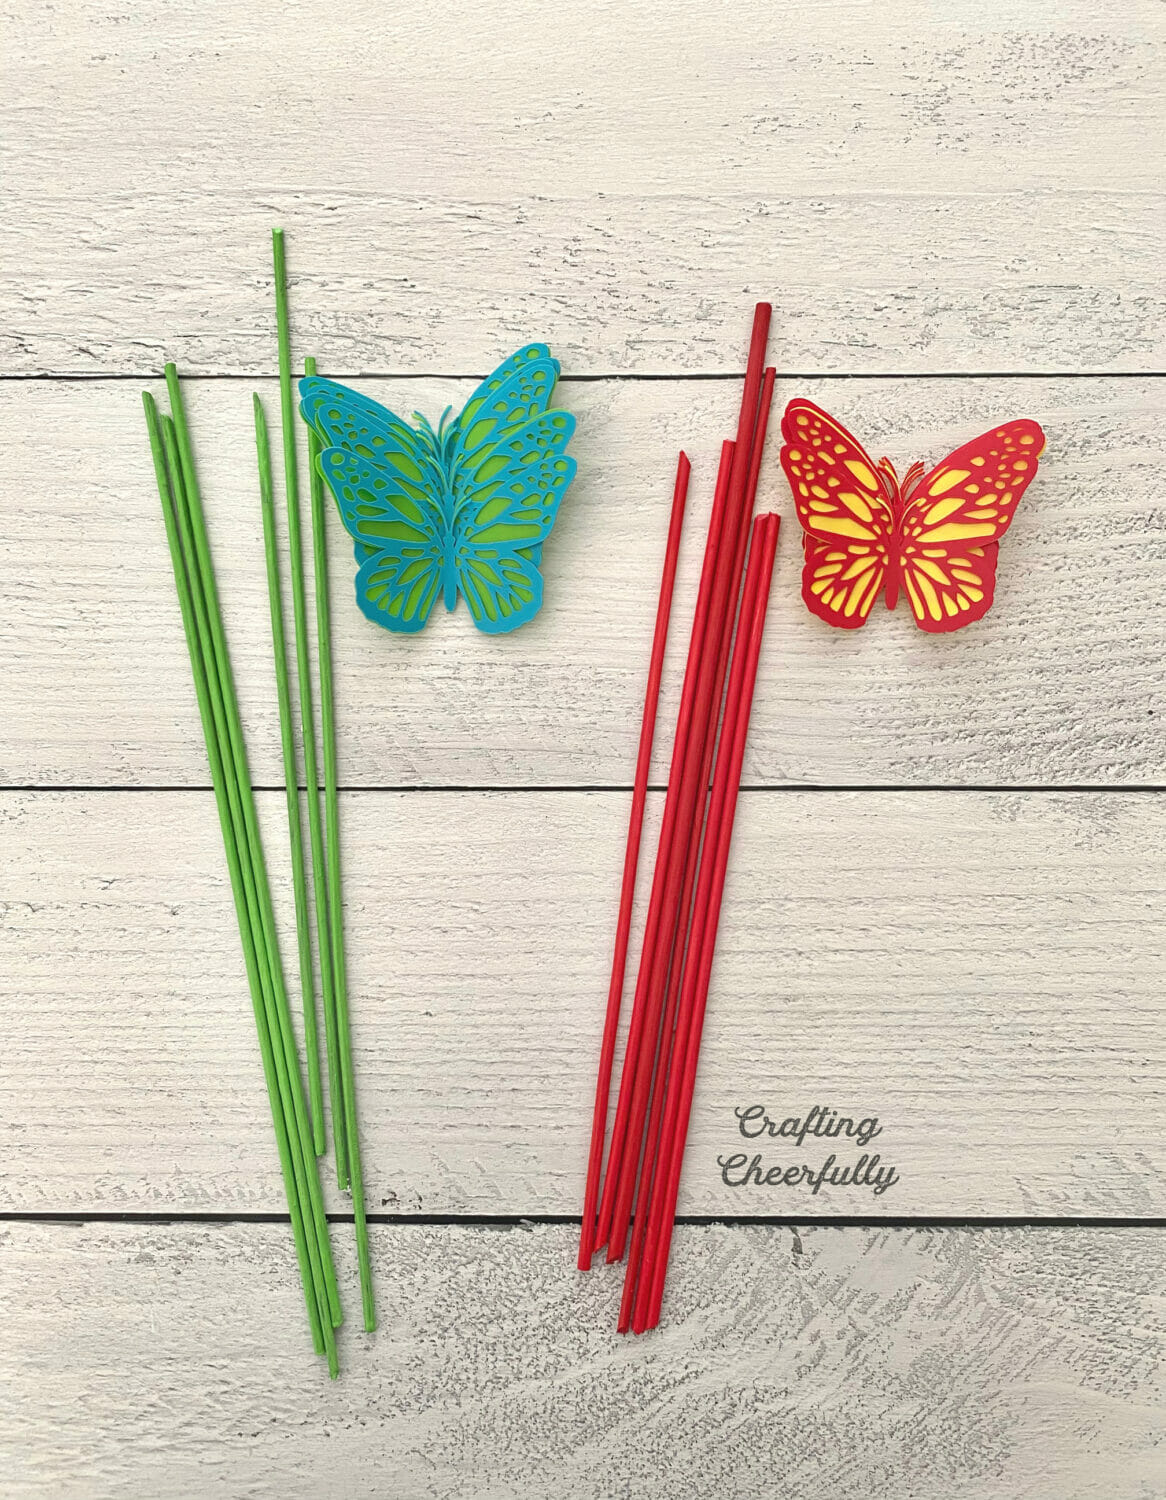 Painted wooden dowels and butterflies lay on a wooden surface.